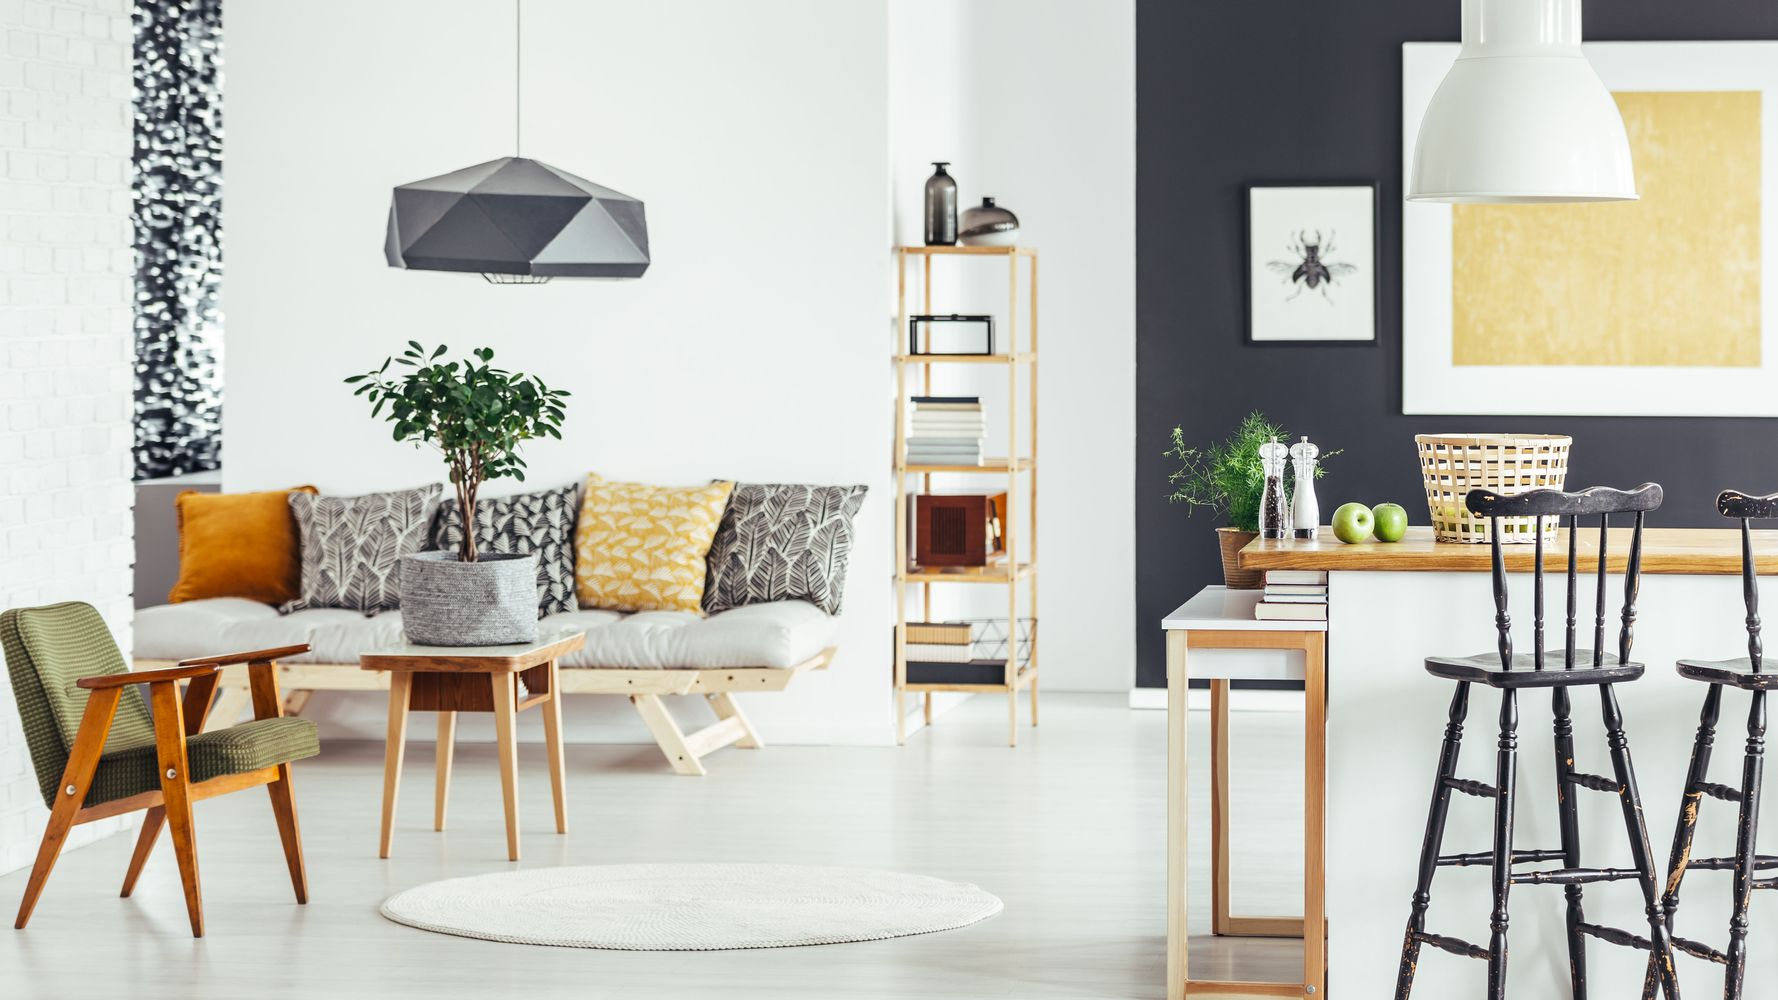 The 42 best websites for furniture and decor that make